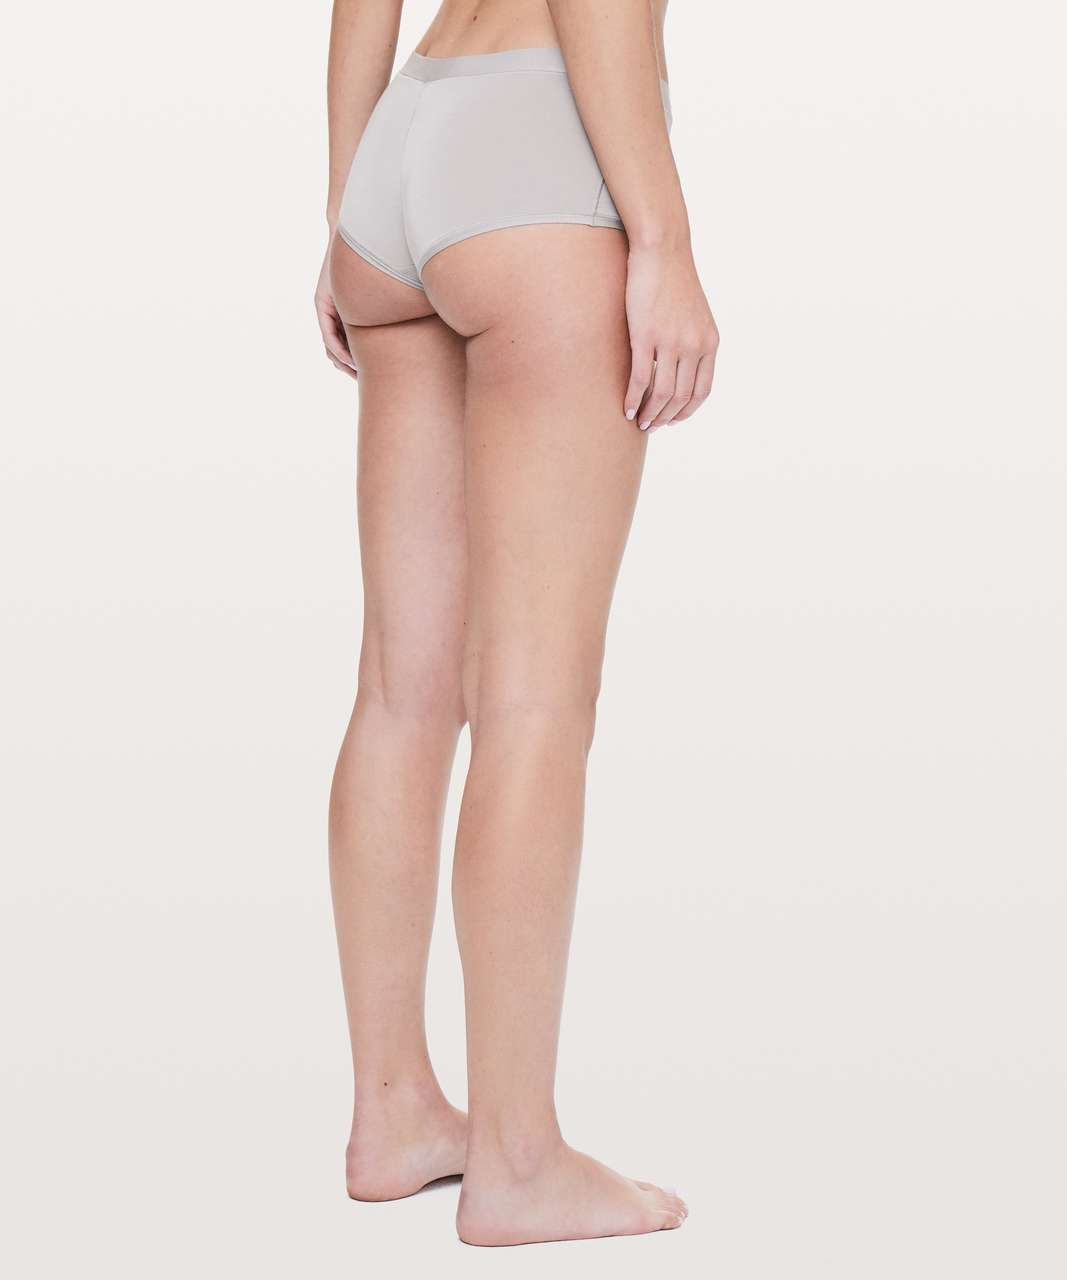 650fe709c Lululemon Simply There Boyshort - Dark Chrome - lulu fanatics